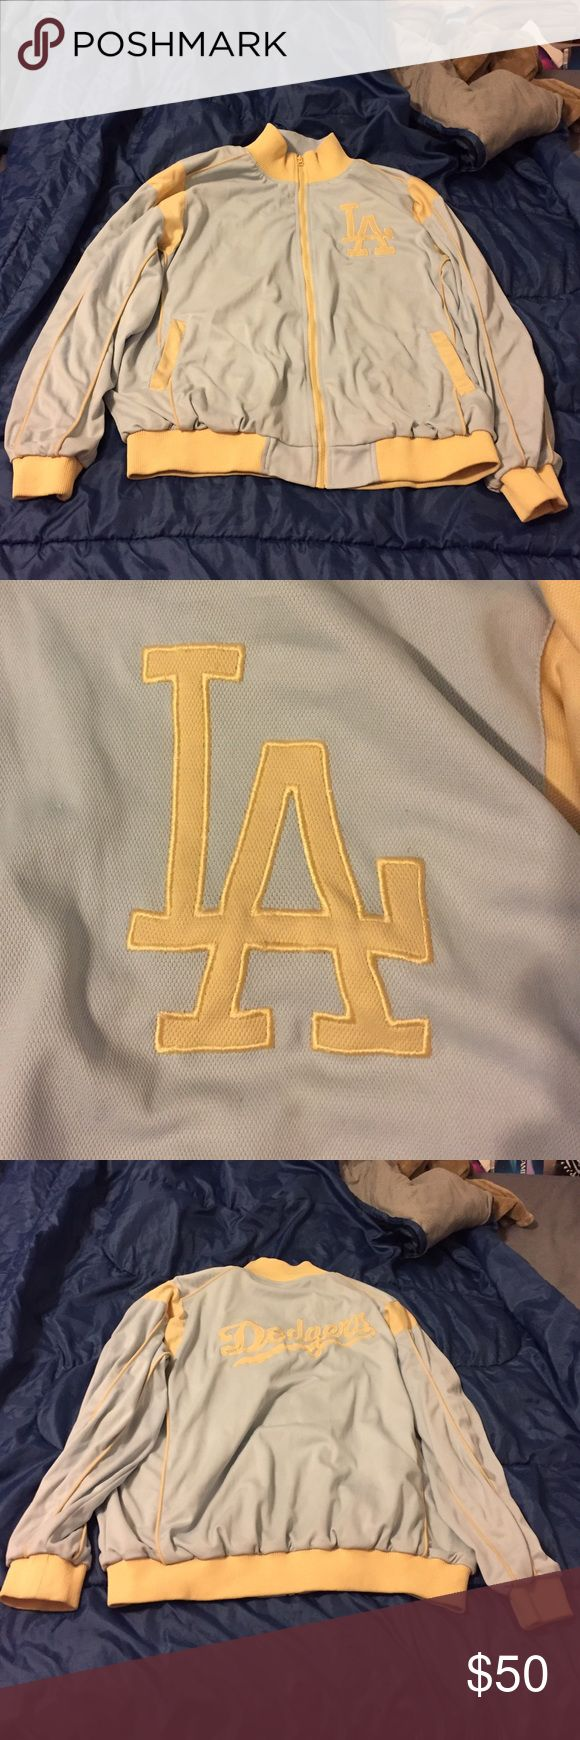 ⚾️Dodgers⚾️️Jackets⚾️️ Dodgers Baby Blue and Beige Jacket. Men's size XXL. MLB Jackets & Coats